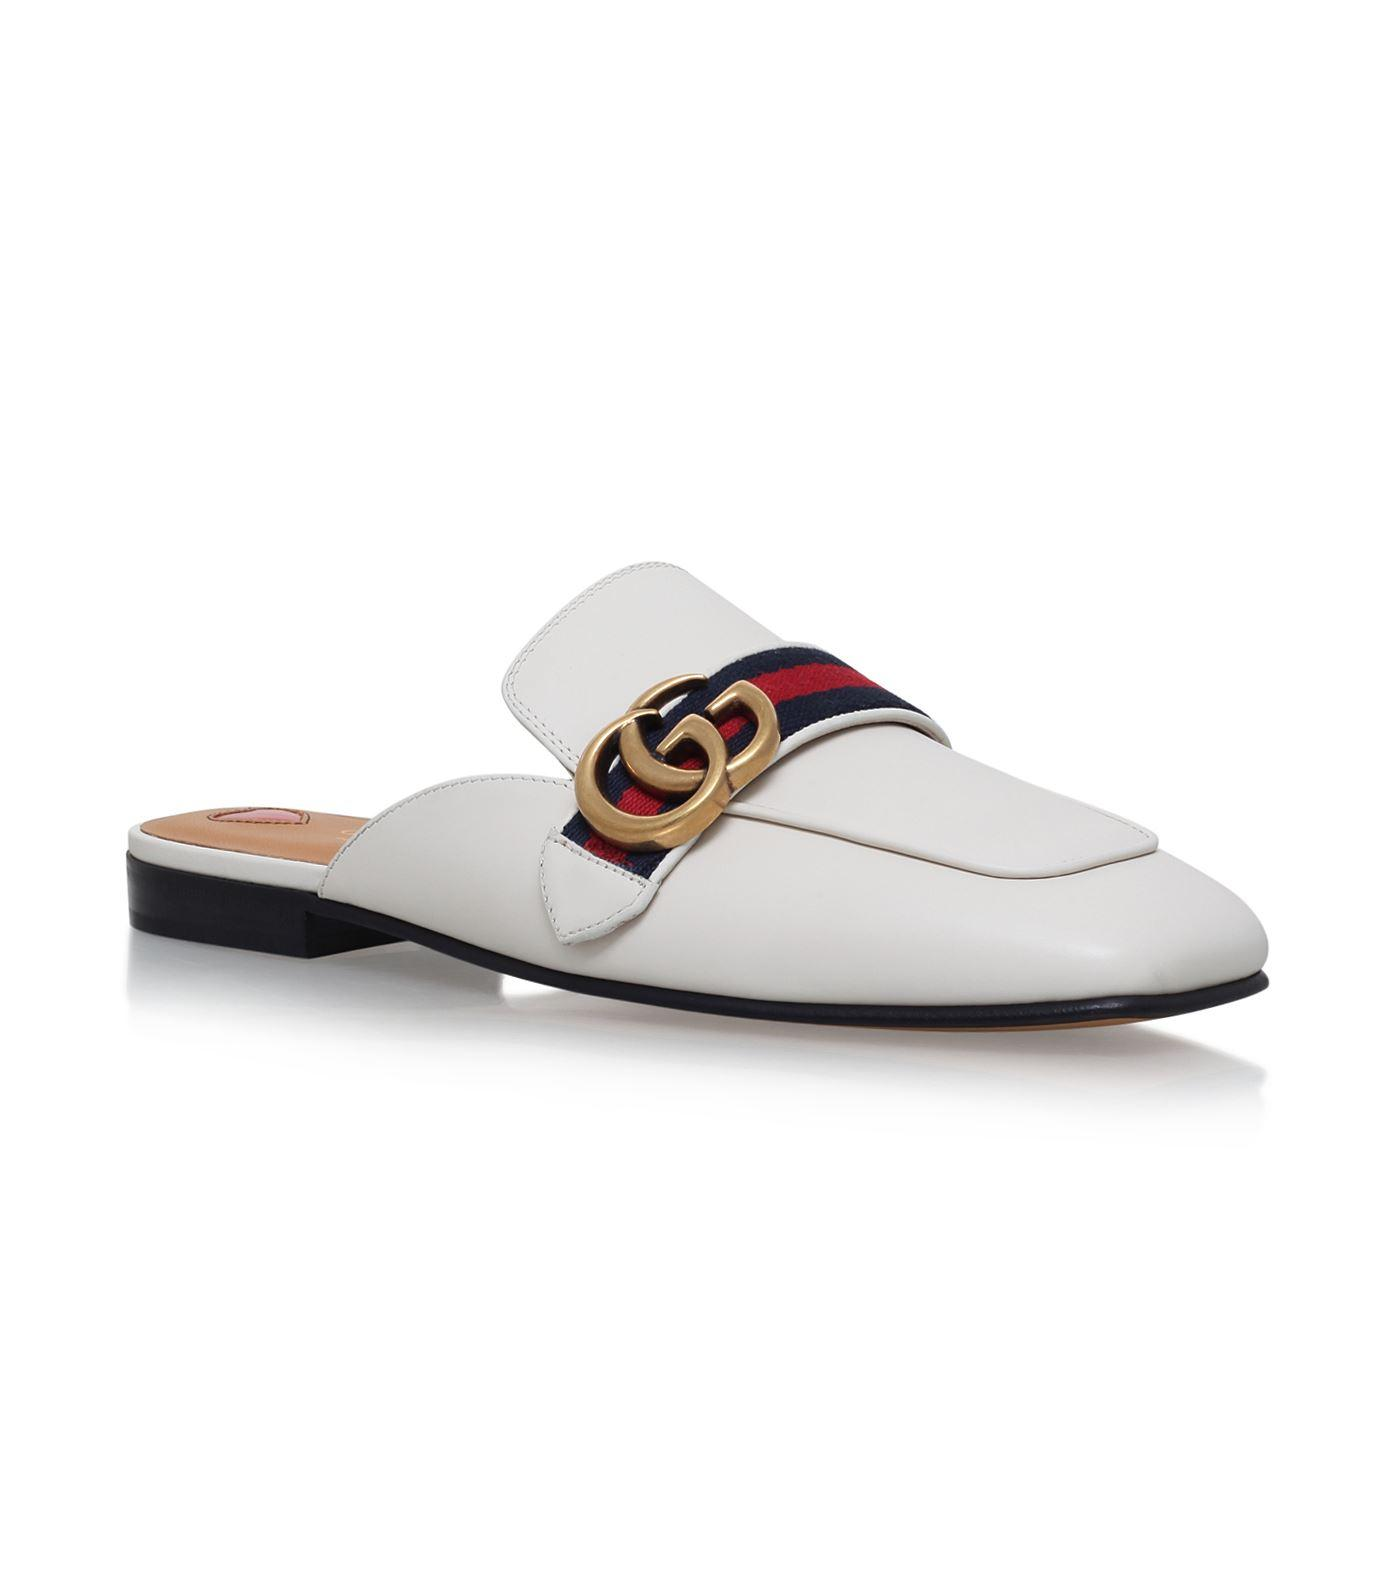 Gucci Logo-Embellished Leather Slippers In White